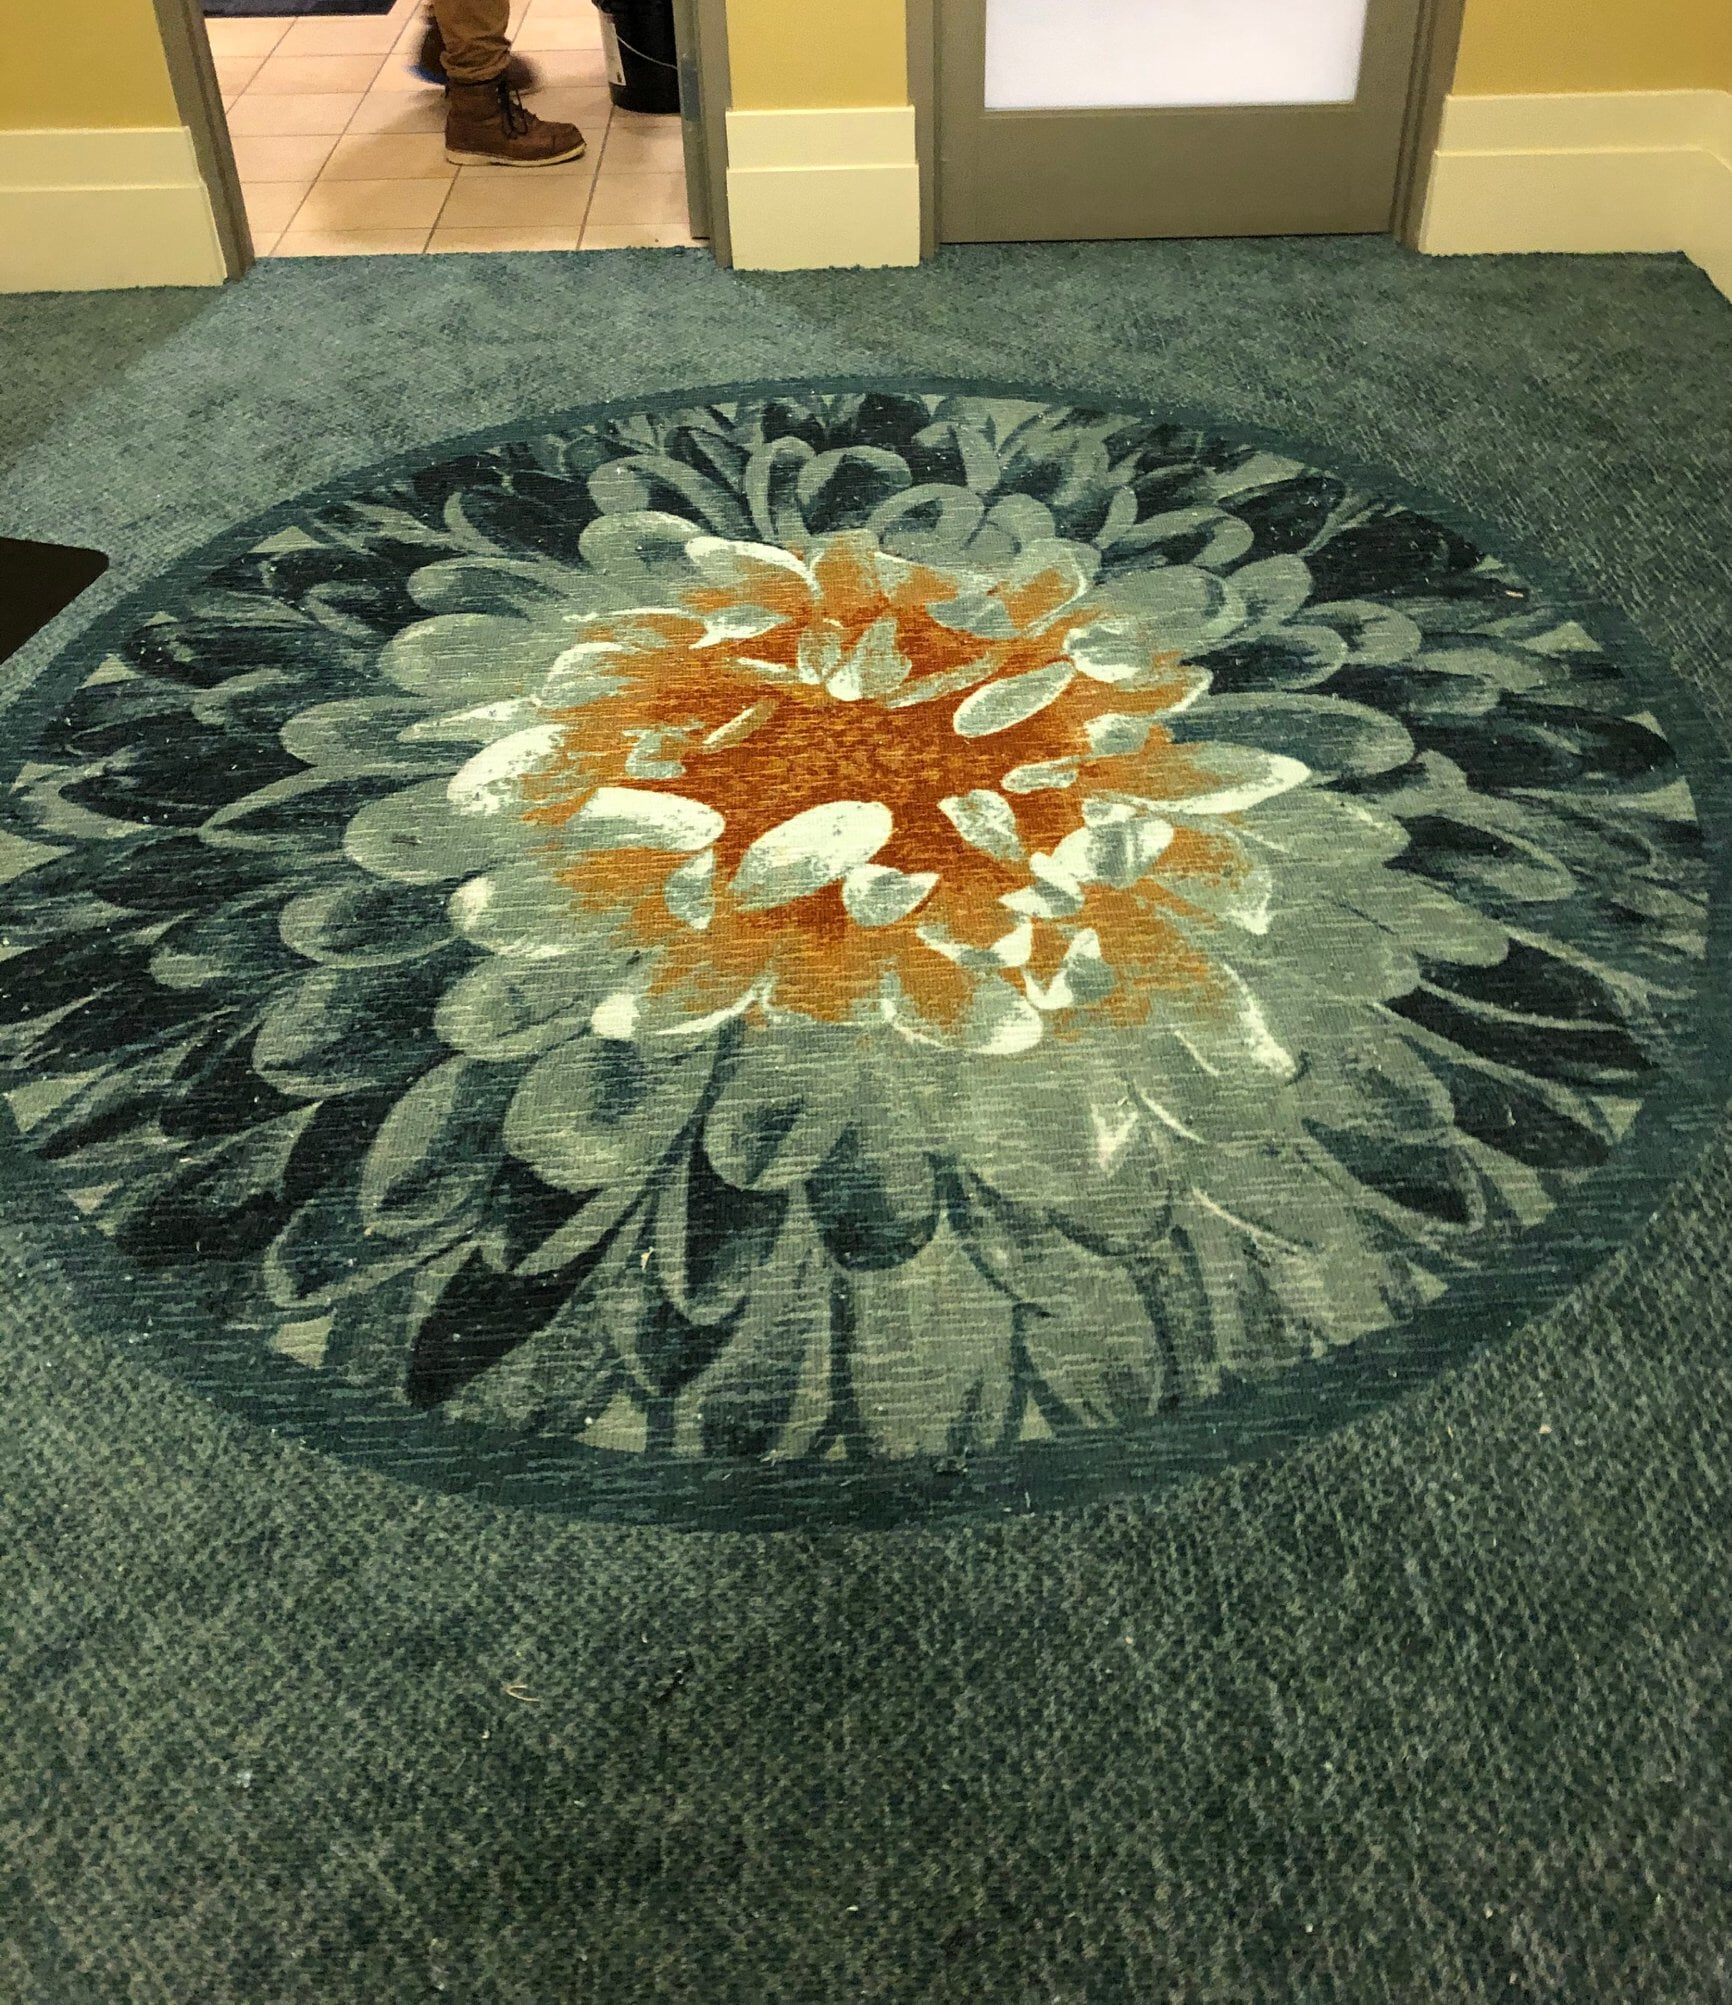 Decorative carpet flooring from StarFloors in Plano, TX